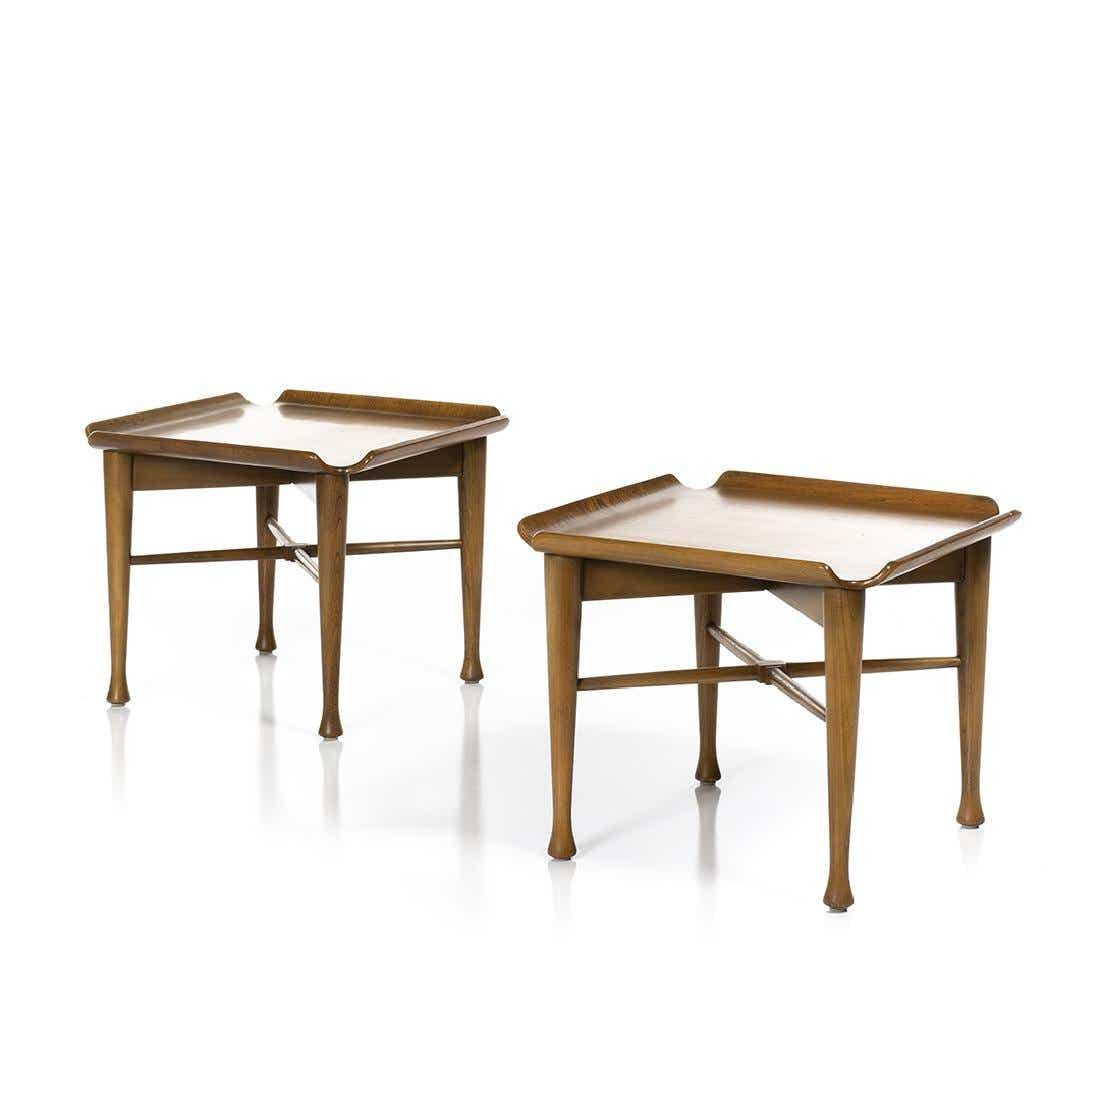 Molded Plywood End Tables (2)